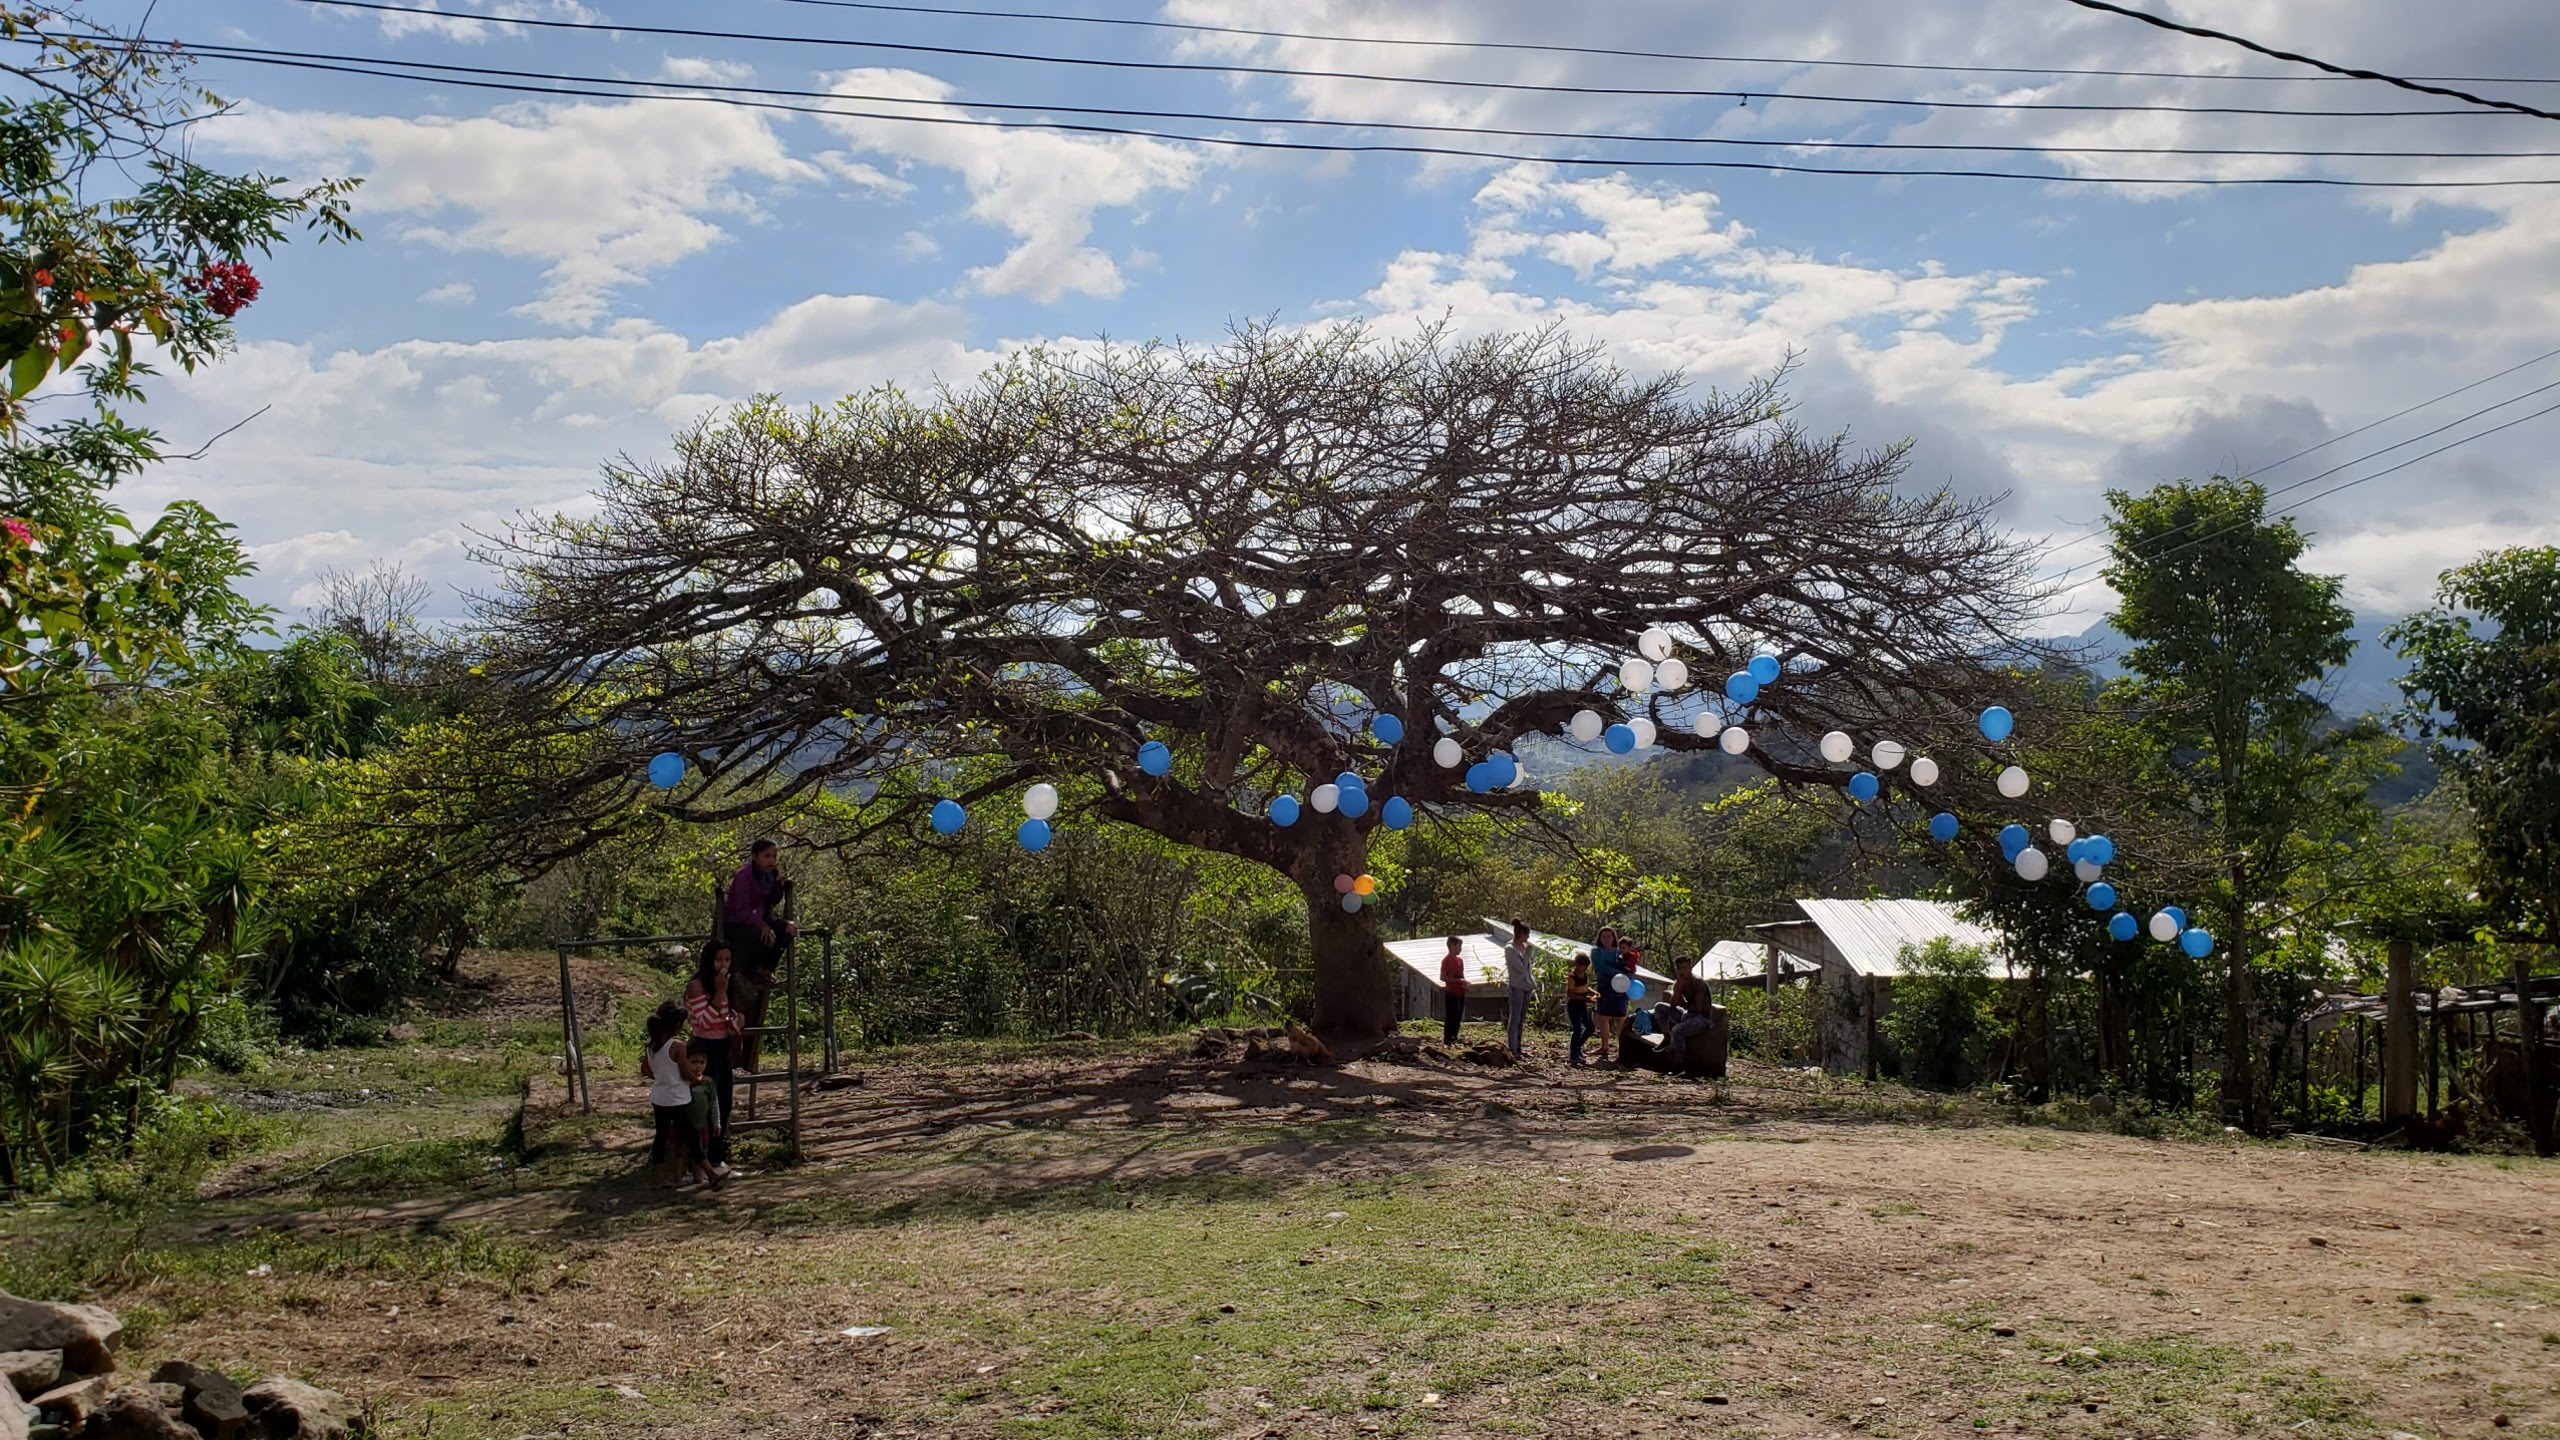 In a village near Trinidad de Copán, a large tree shades the community playground and gathering place that were developed and built in partnership with U.S. Presbyterians.